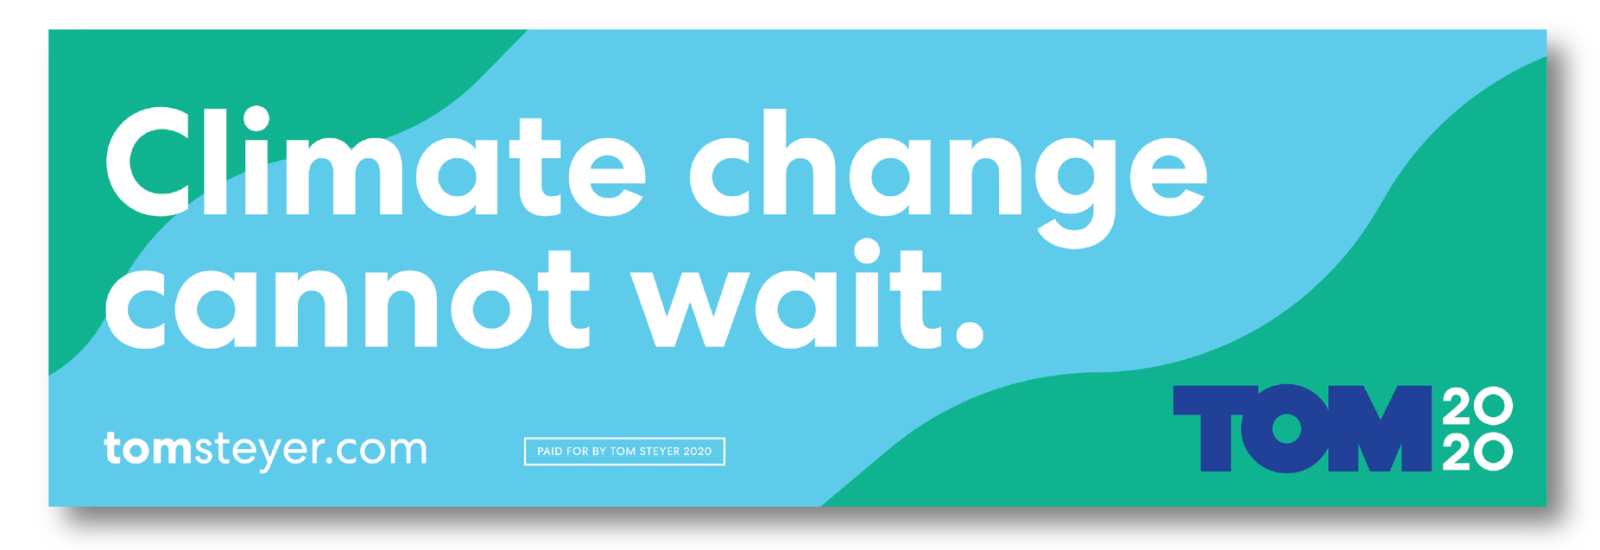 Climate Change Cannot Wait sticker